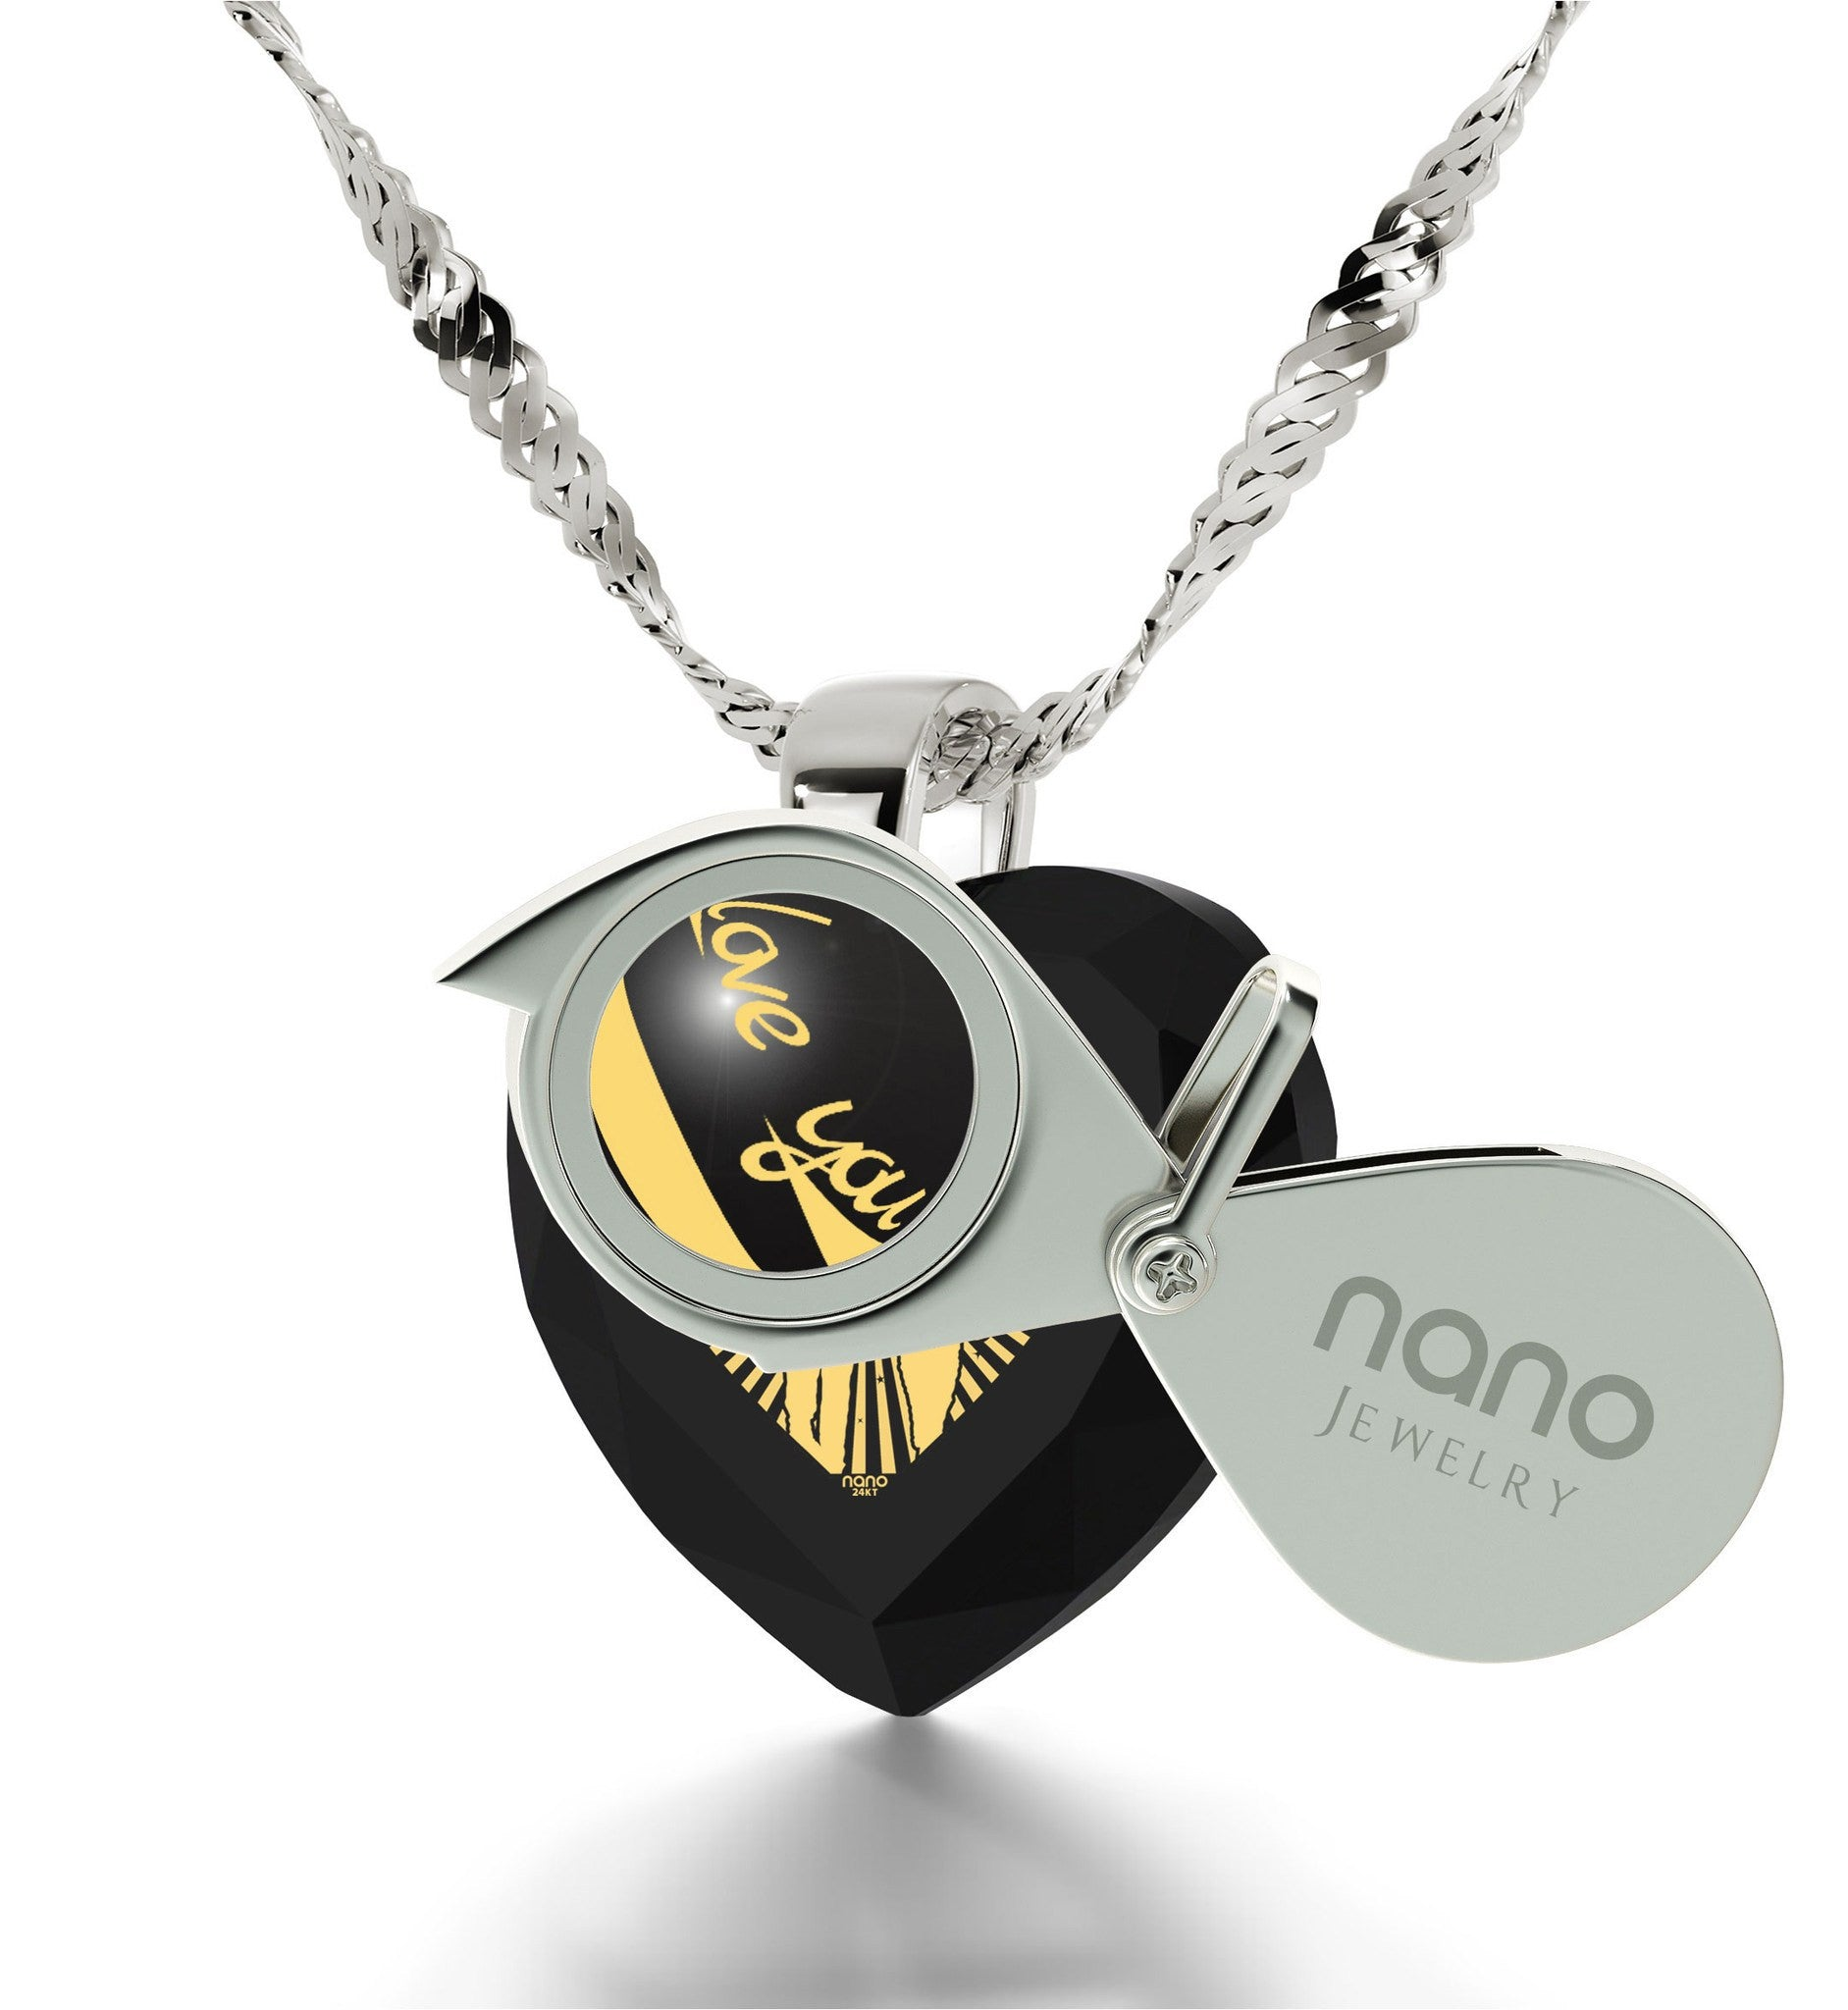 """Good Anniversary Gifts for Her, 24k Imprinted Necklace,14k White Gold Jewelry, Birthday Present for Wife, Nano"""